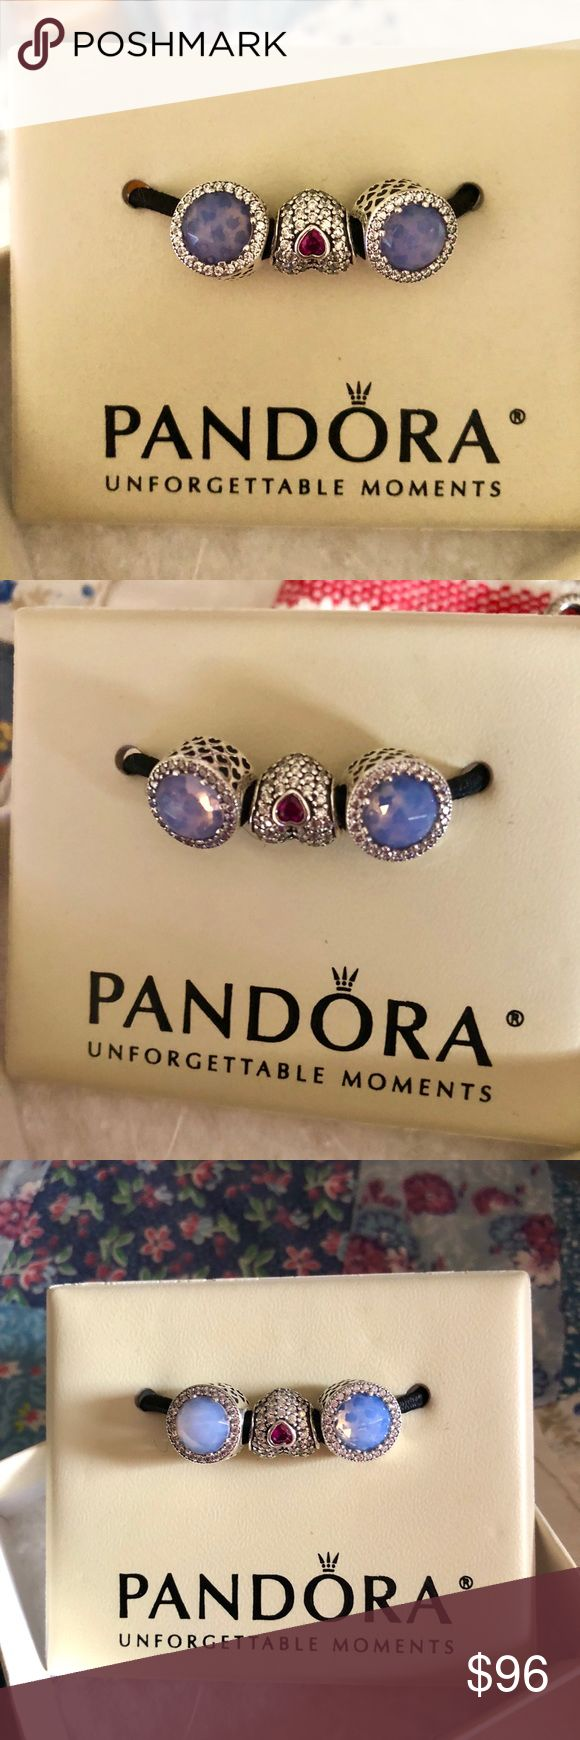 Authentic 2 Pandora Opalescent Radiant Hearts ALE Authentic 2 Pandora Opalescent Radiant Hearts ALE!!!  Includes both pandora Opalescent Radiant Hearts !!! Pandora Box Not Included!!!i can include a regular jewelry store box !!! Pandora Jewelry Bracelets